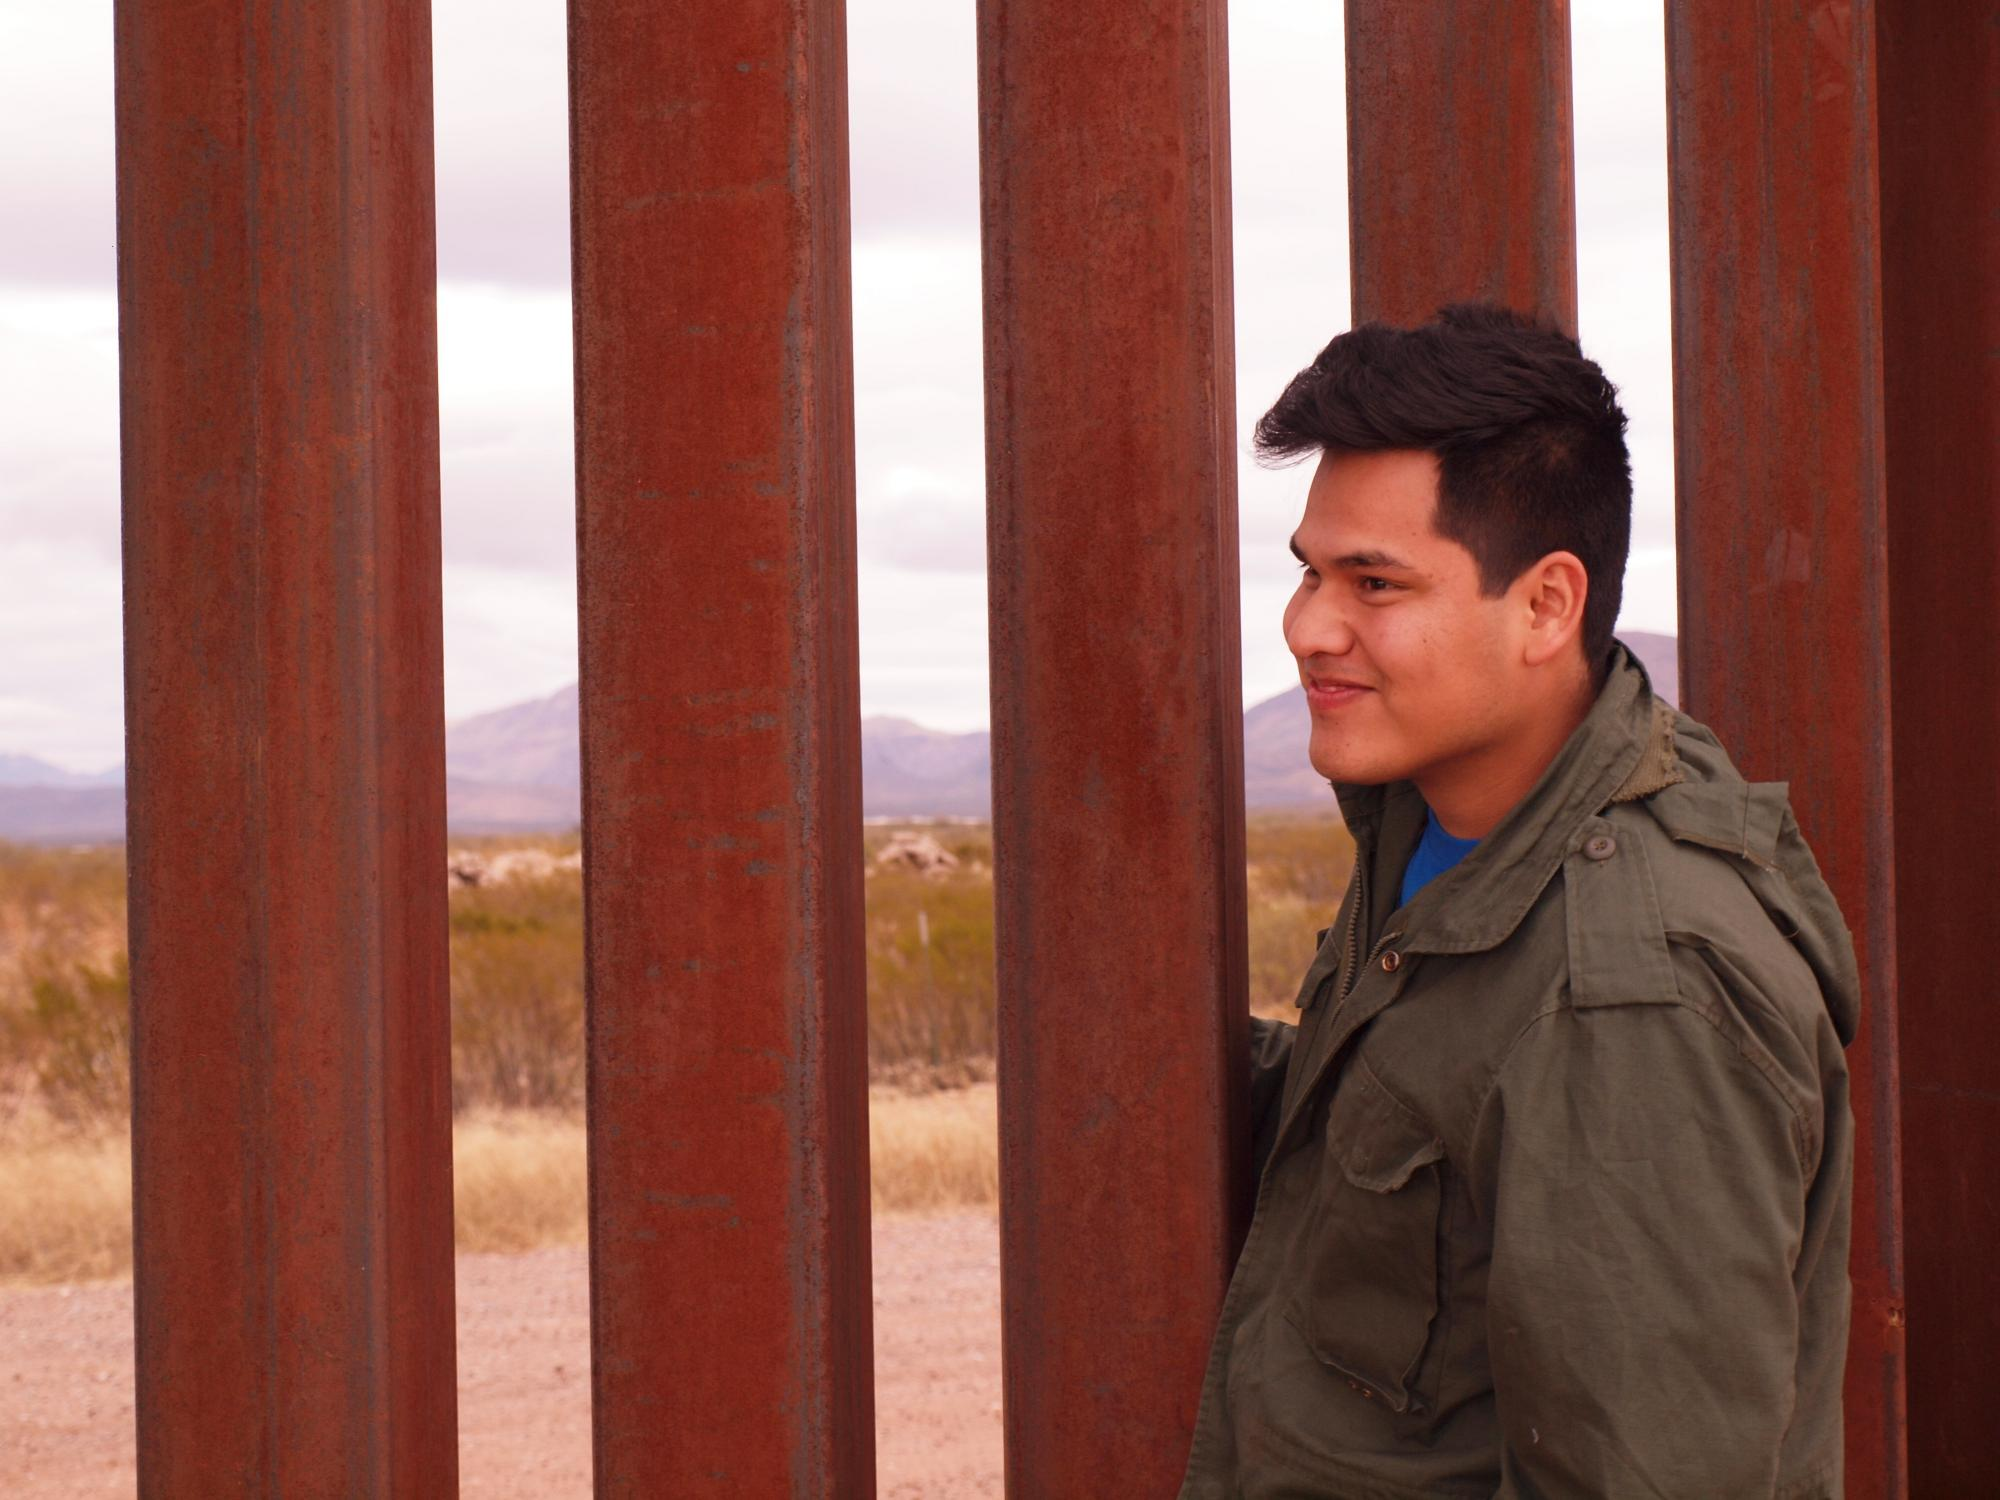 Bolivian YAMEN participant Juan Torrico Soliz, serving in Mexico City, on an MCC trip to the U.S.-Mexico border in Agua Prieta, Sonora. (MCC Photo: Erica VanEssendelft)